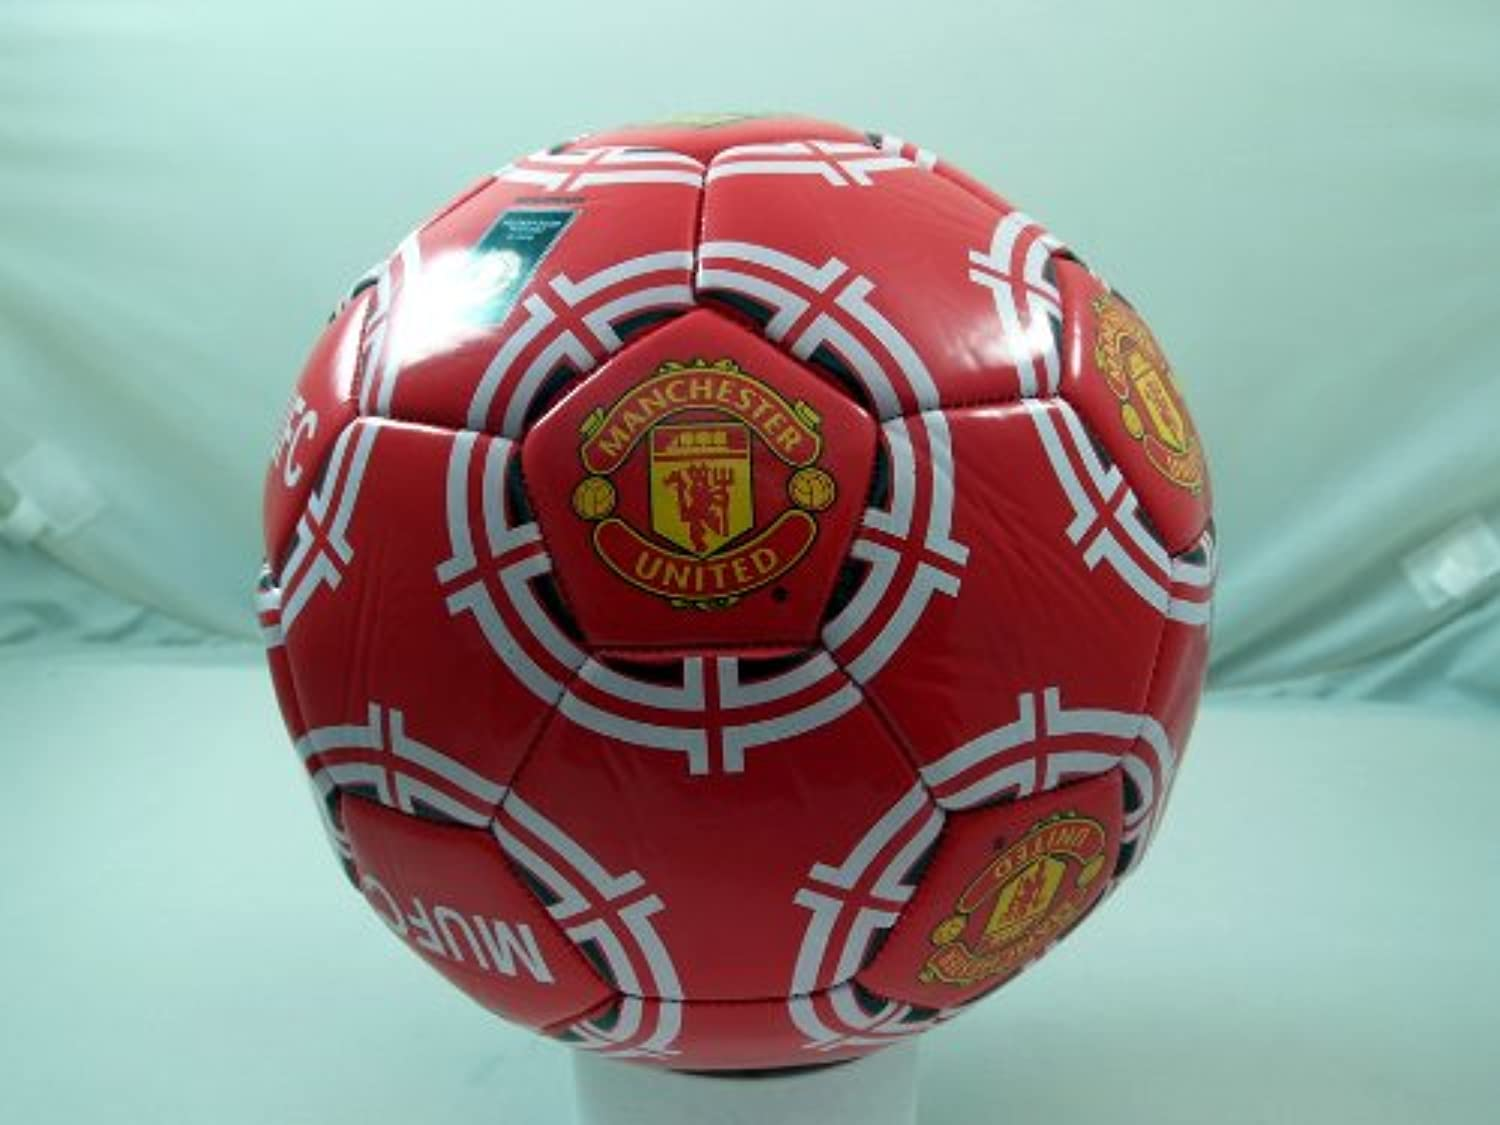 MANCHESTER UNITED FC OFFICIAL SIZE 5 SOCCER BALL  096